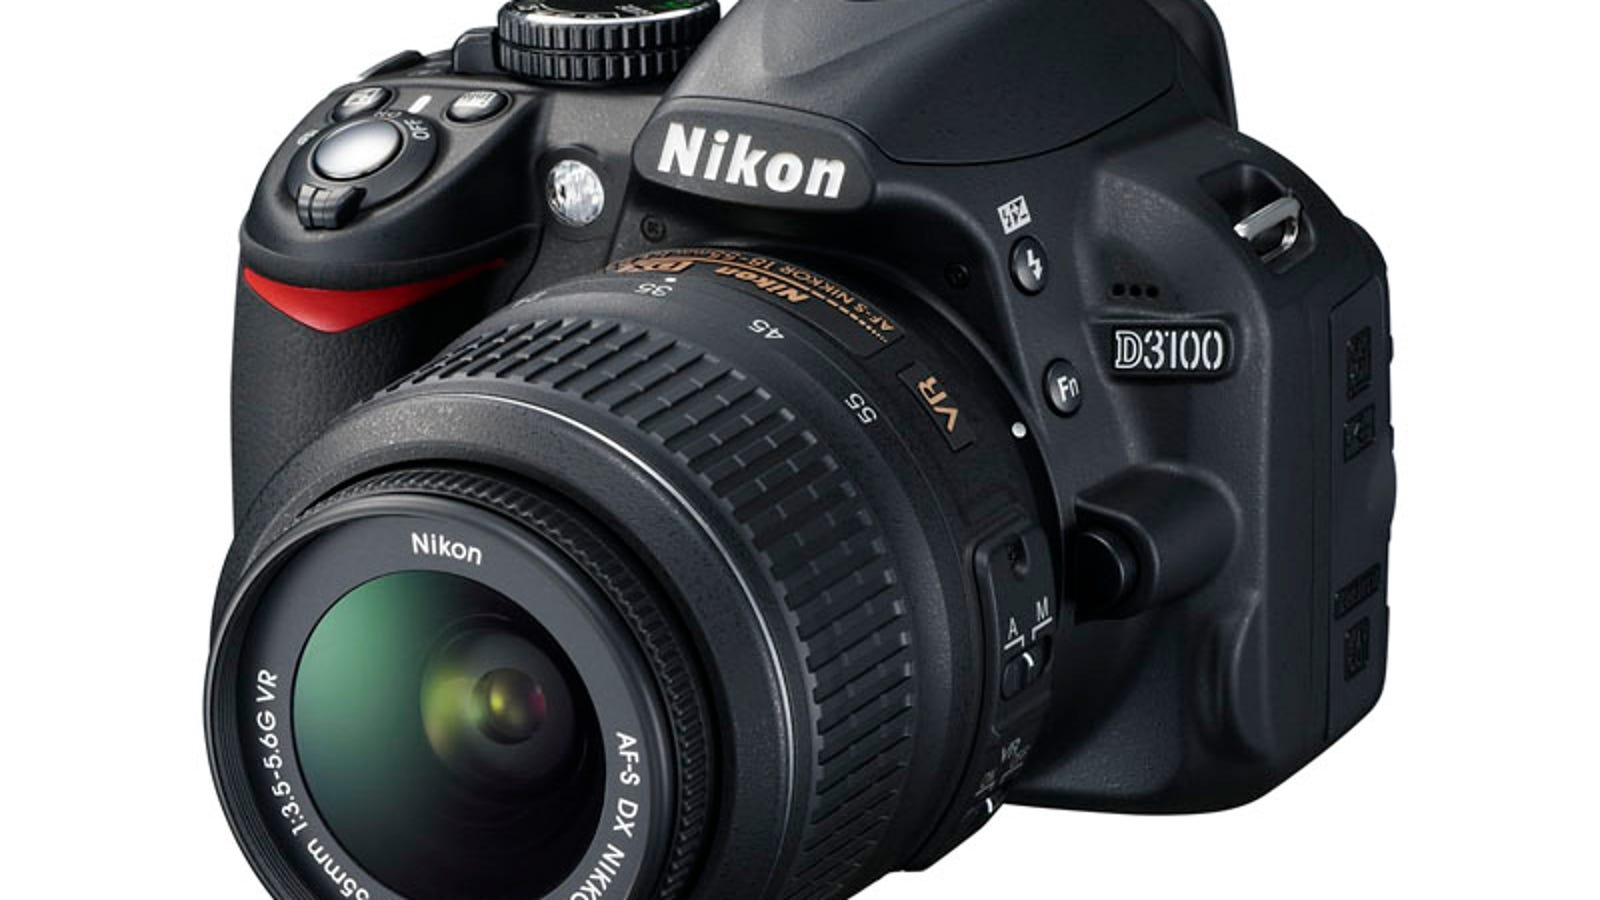 Test Driving Nikon D90 Video With 10 >> Nikon D3100 The First Dslr With Real Video Autofocus